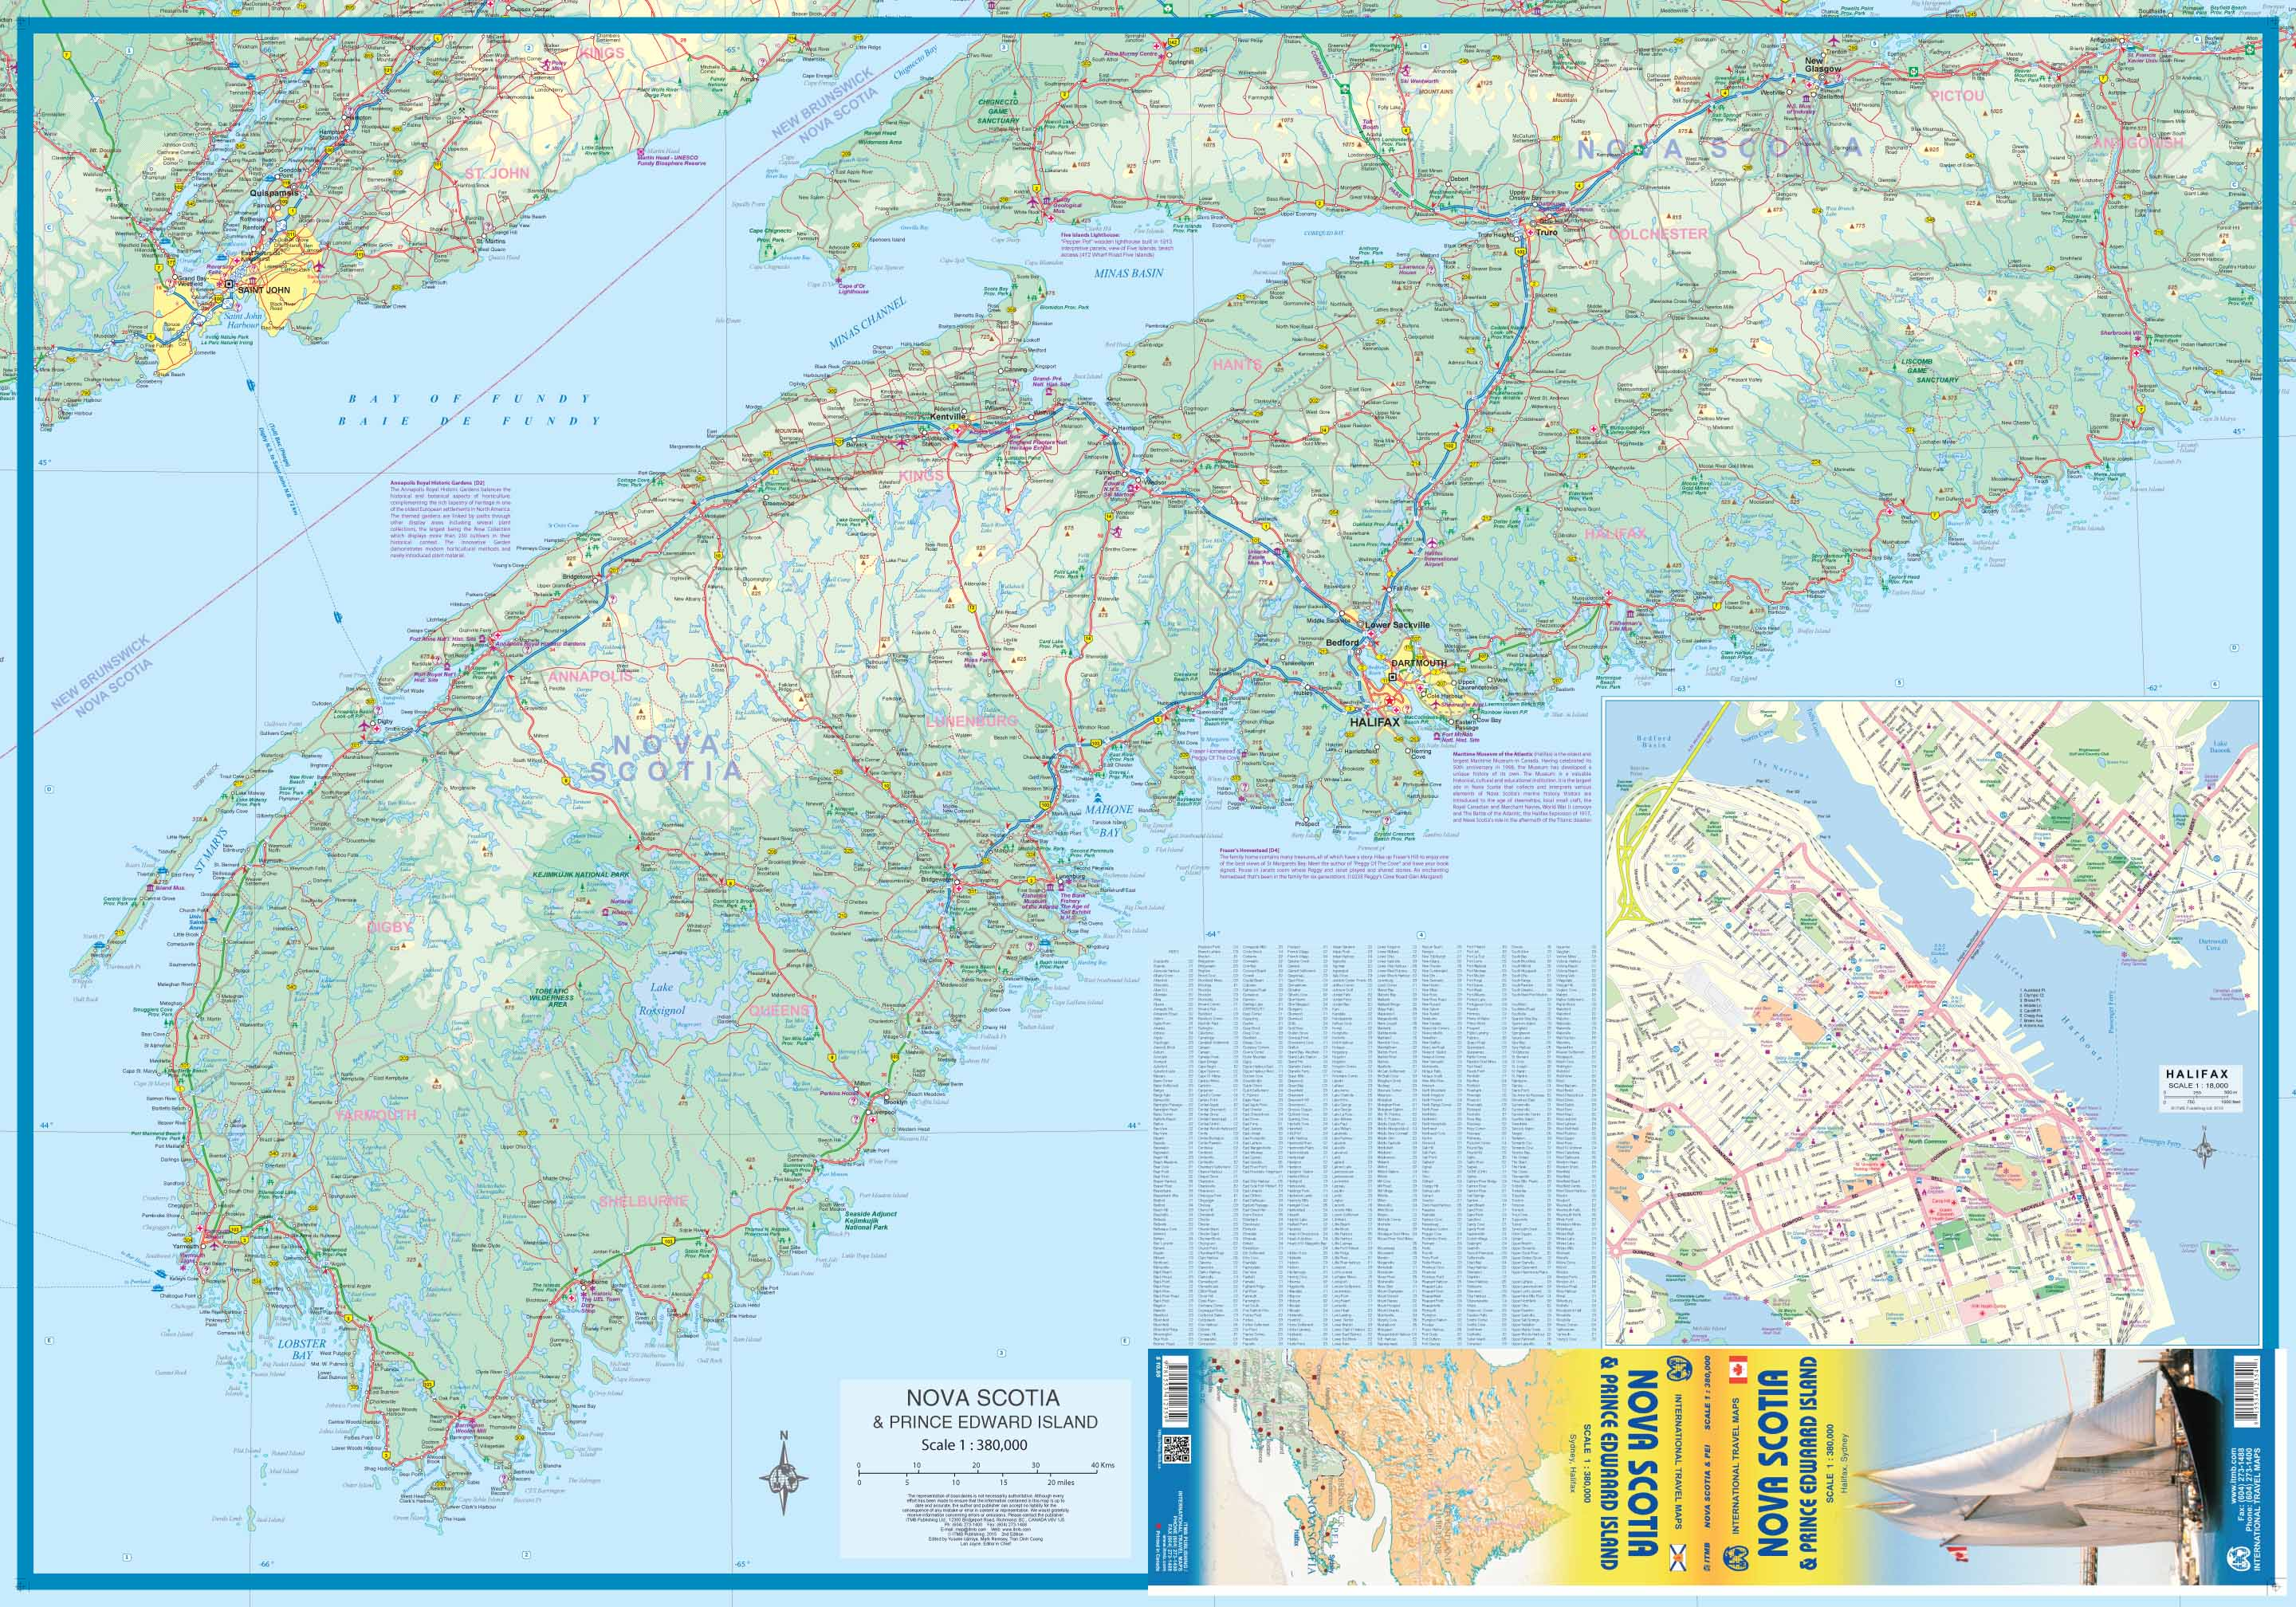 Maps for travel, City Maps, Road Maps, Guides, Globes ... Map Nova Scotia on newfoundland and labrador, new brunswick map, alberta map, quebec map, british columbia map, iceland map, northwest territories, cabot trail map, british columbia, canada map, prince edward island, north america map, cape breton island map, new brunswick, quebec city, ontario map, australia map, saskatchewan map, québec, pei map, peggy's cove map, world map, nevada map, maine map, nfld map, bay of fundy map, scotland map,